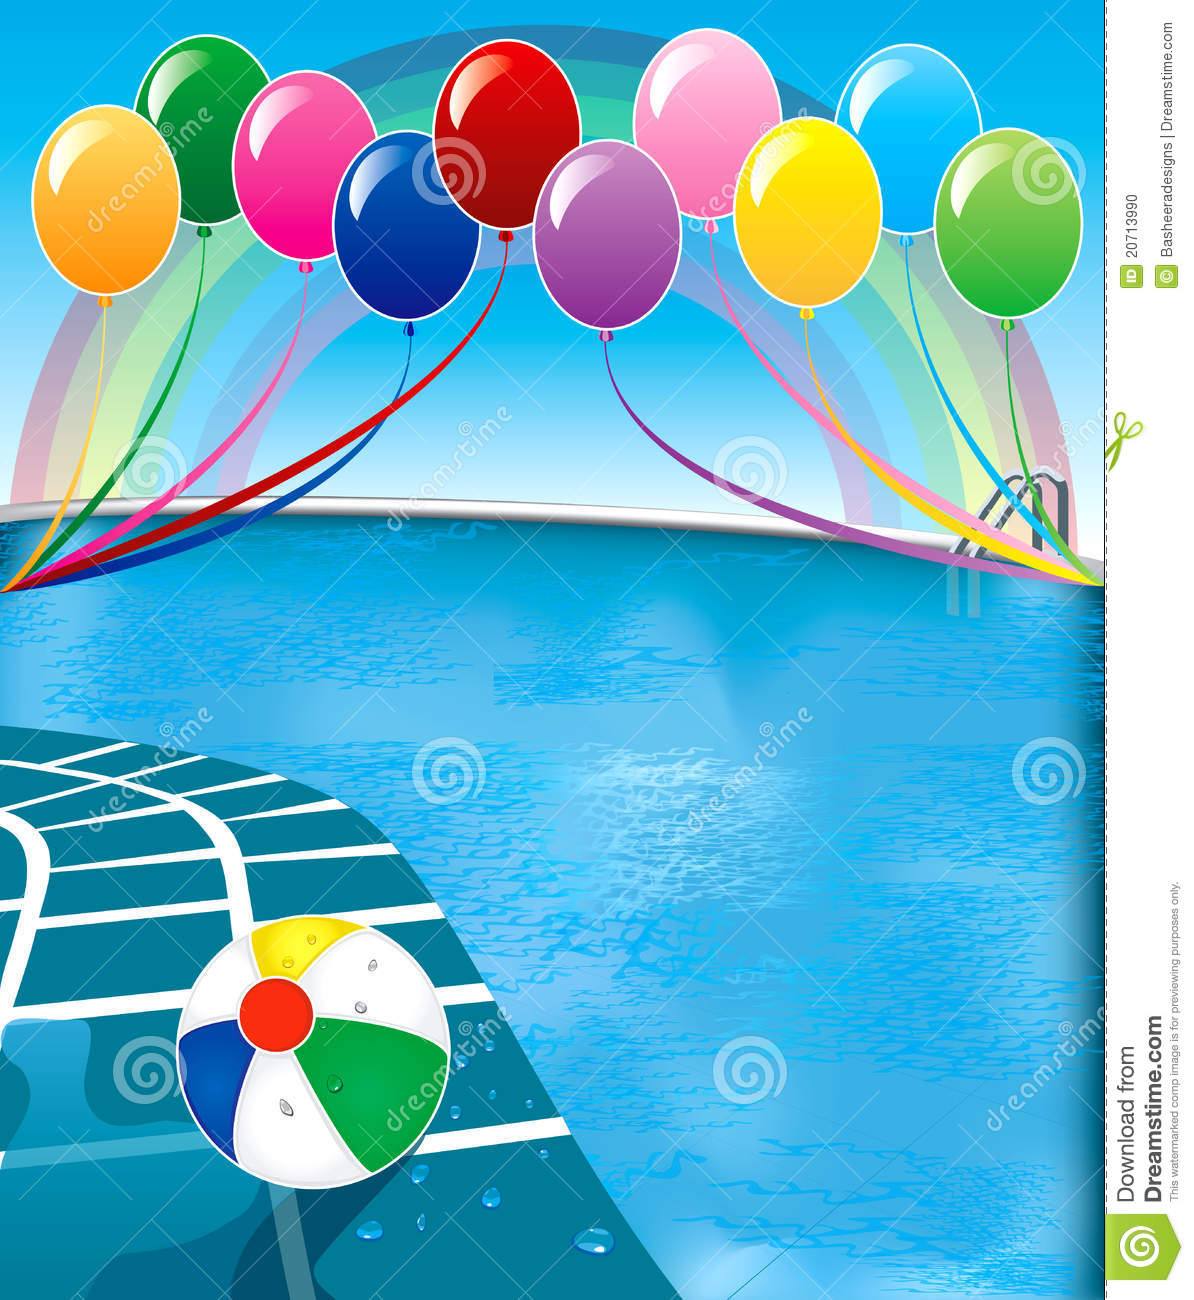 Vector illustration of pool party with balloons and beach ball